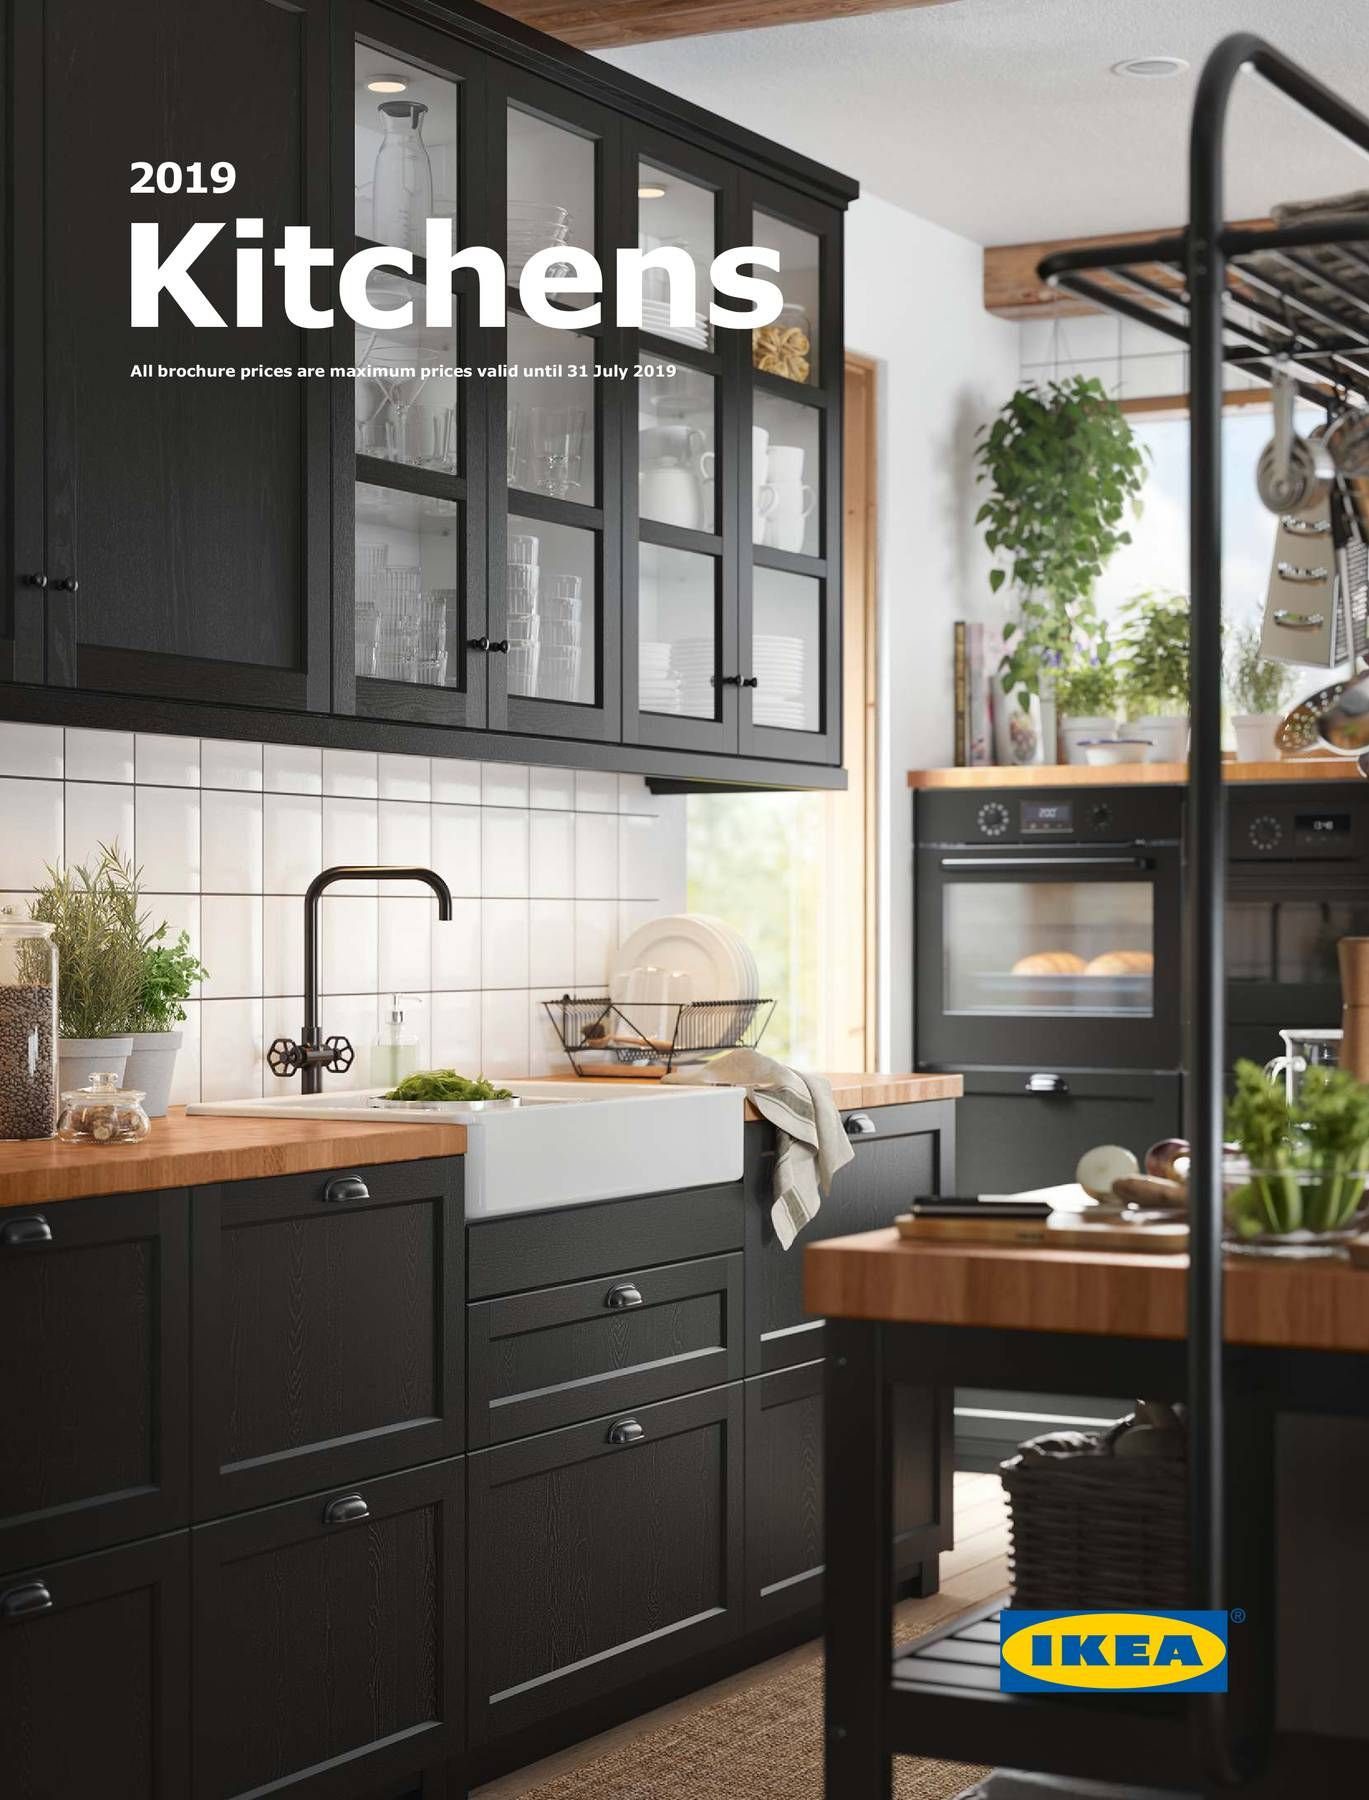 Awesome Ikea Kitchens 2019 Ideas With Images Kitchen